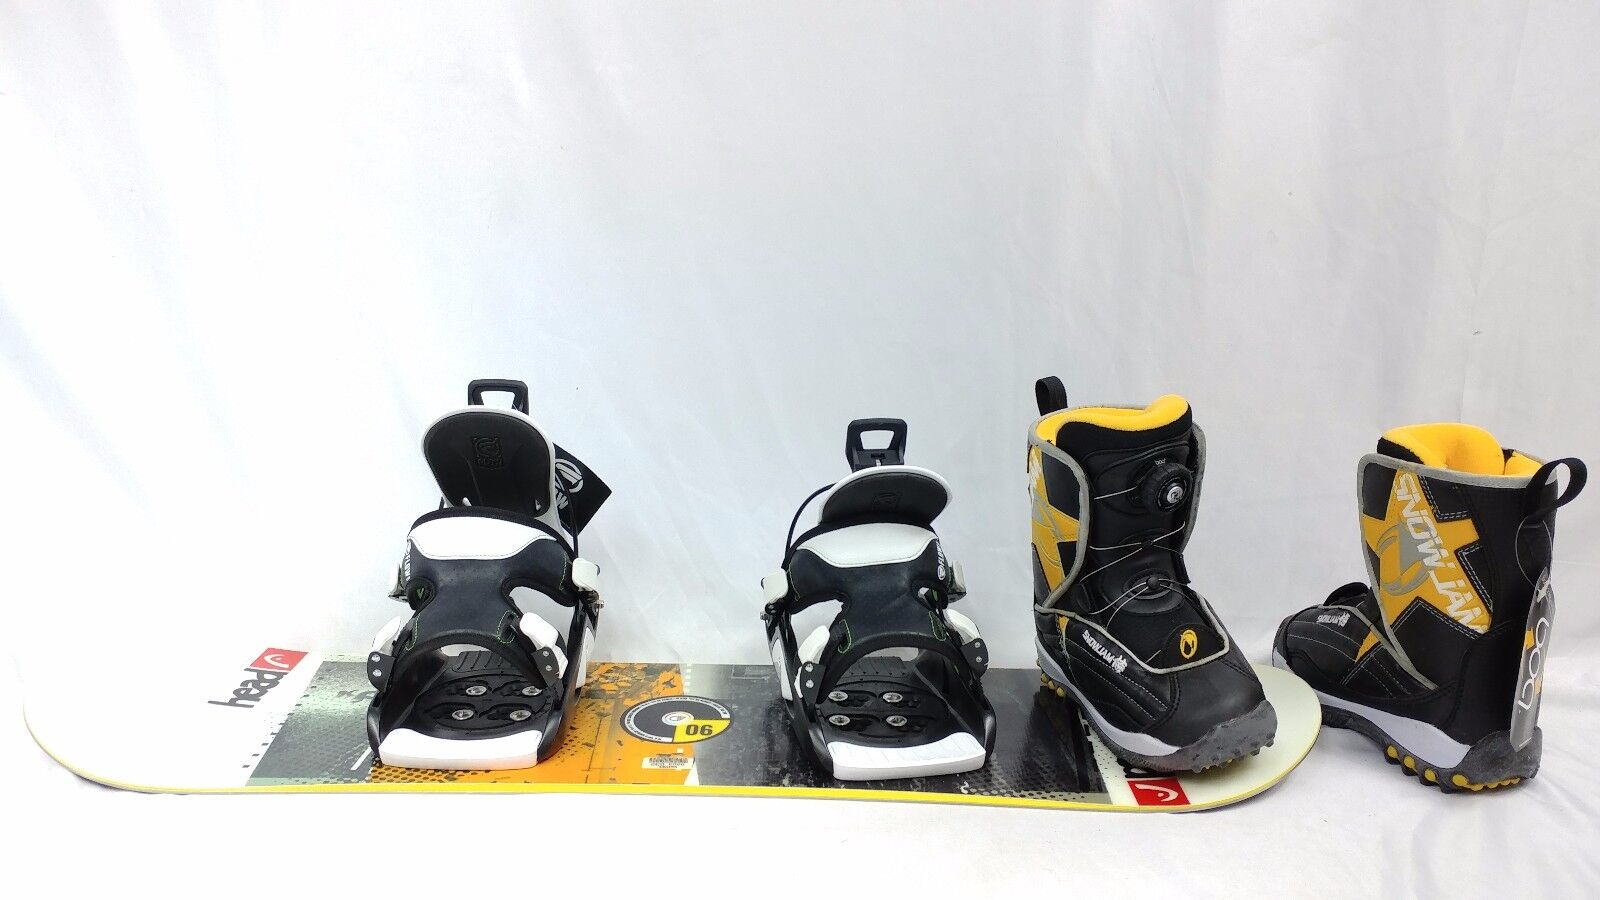 KIDS HEAD snowBoard Snow 90cm, Snow snowBoard Jam Stiefel , with FLOW bindings SEND FITTING INFO a4653a